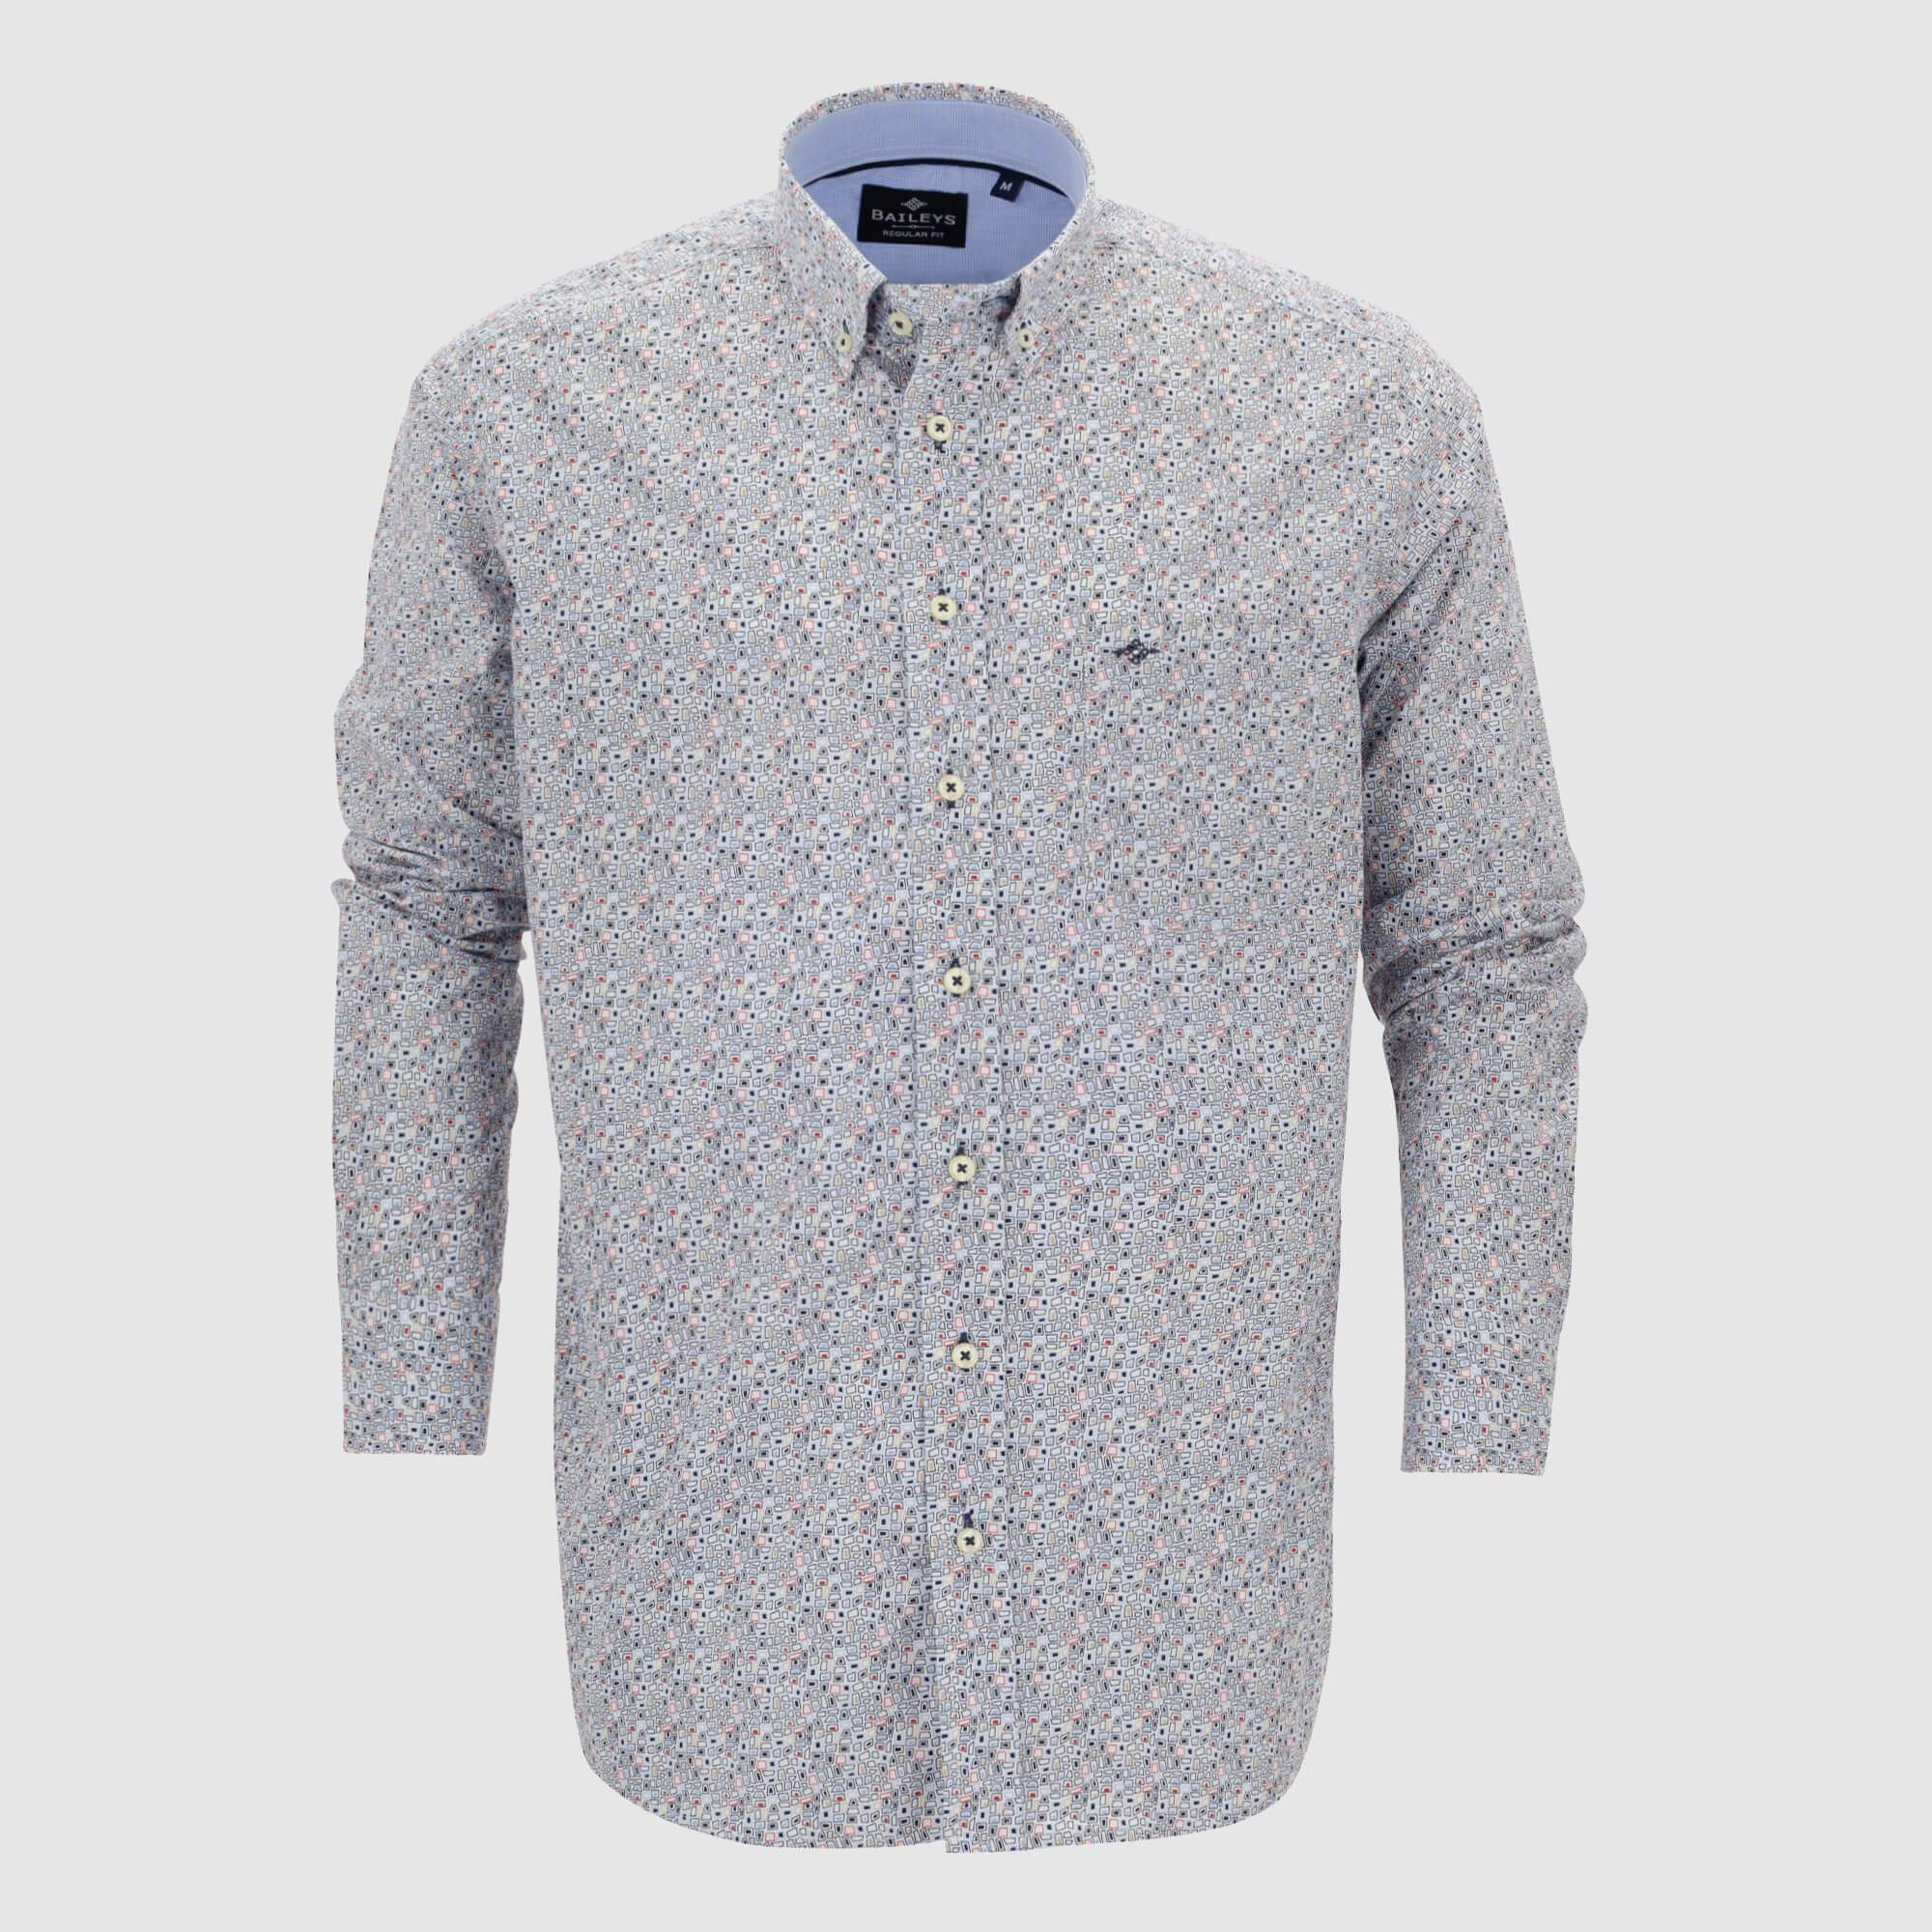 Camisa estampada regular fit 107679